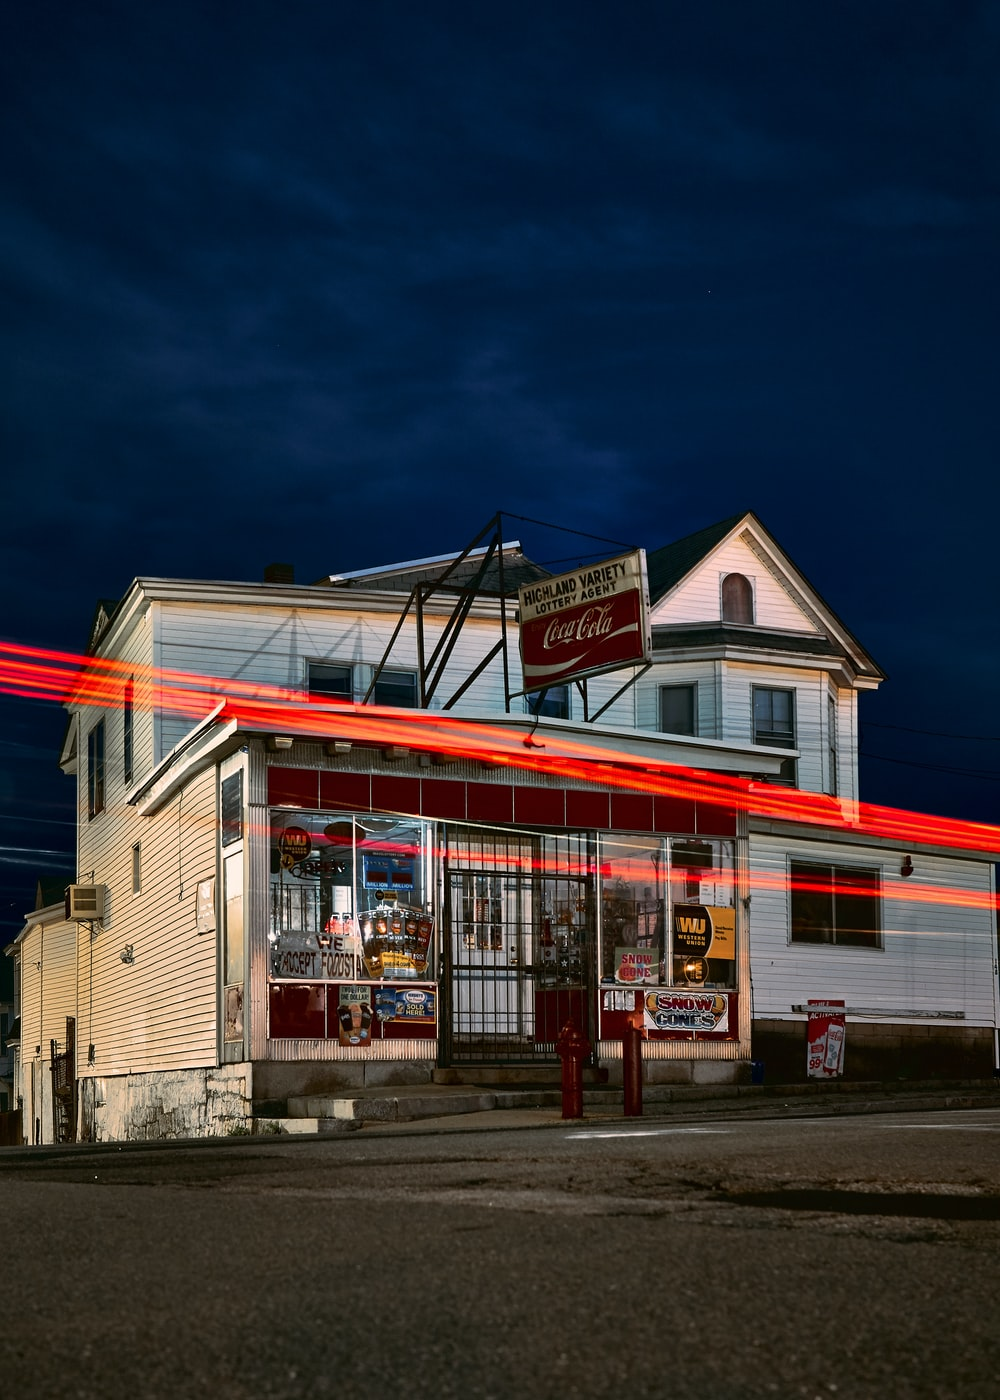 time lapse photo of storefront during nighttime